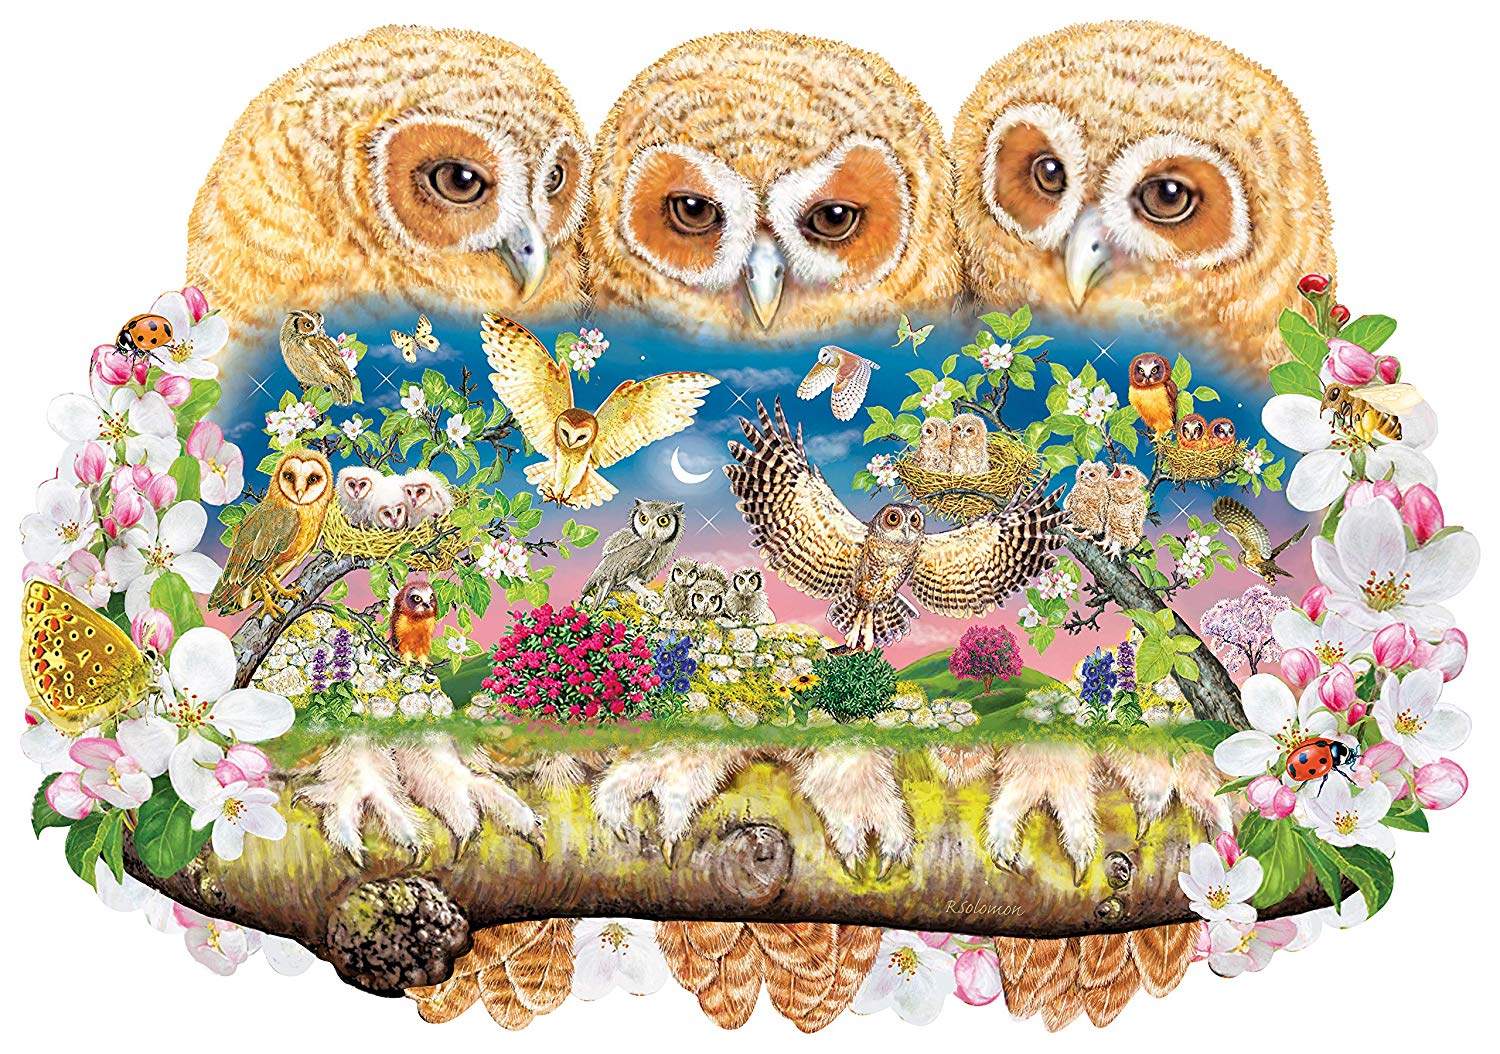 wentworth-holzpuzzle-owlets-in-the-moonlight-250-teile-puzzle-wentworth-840106, 49.95 EUR @ puzzle-de